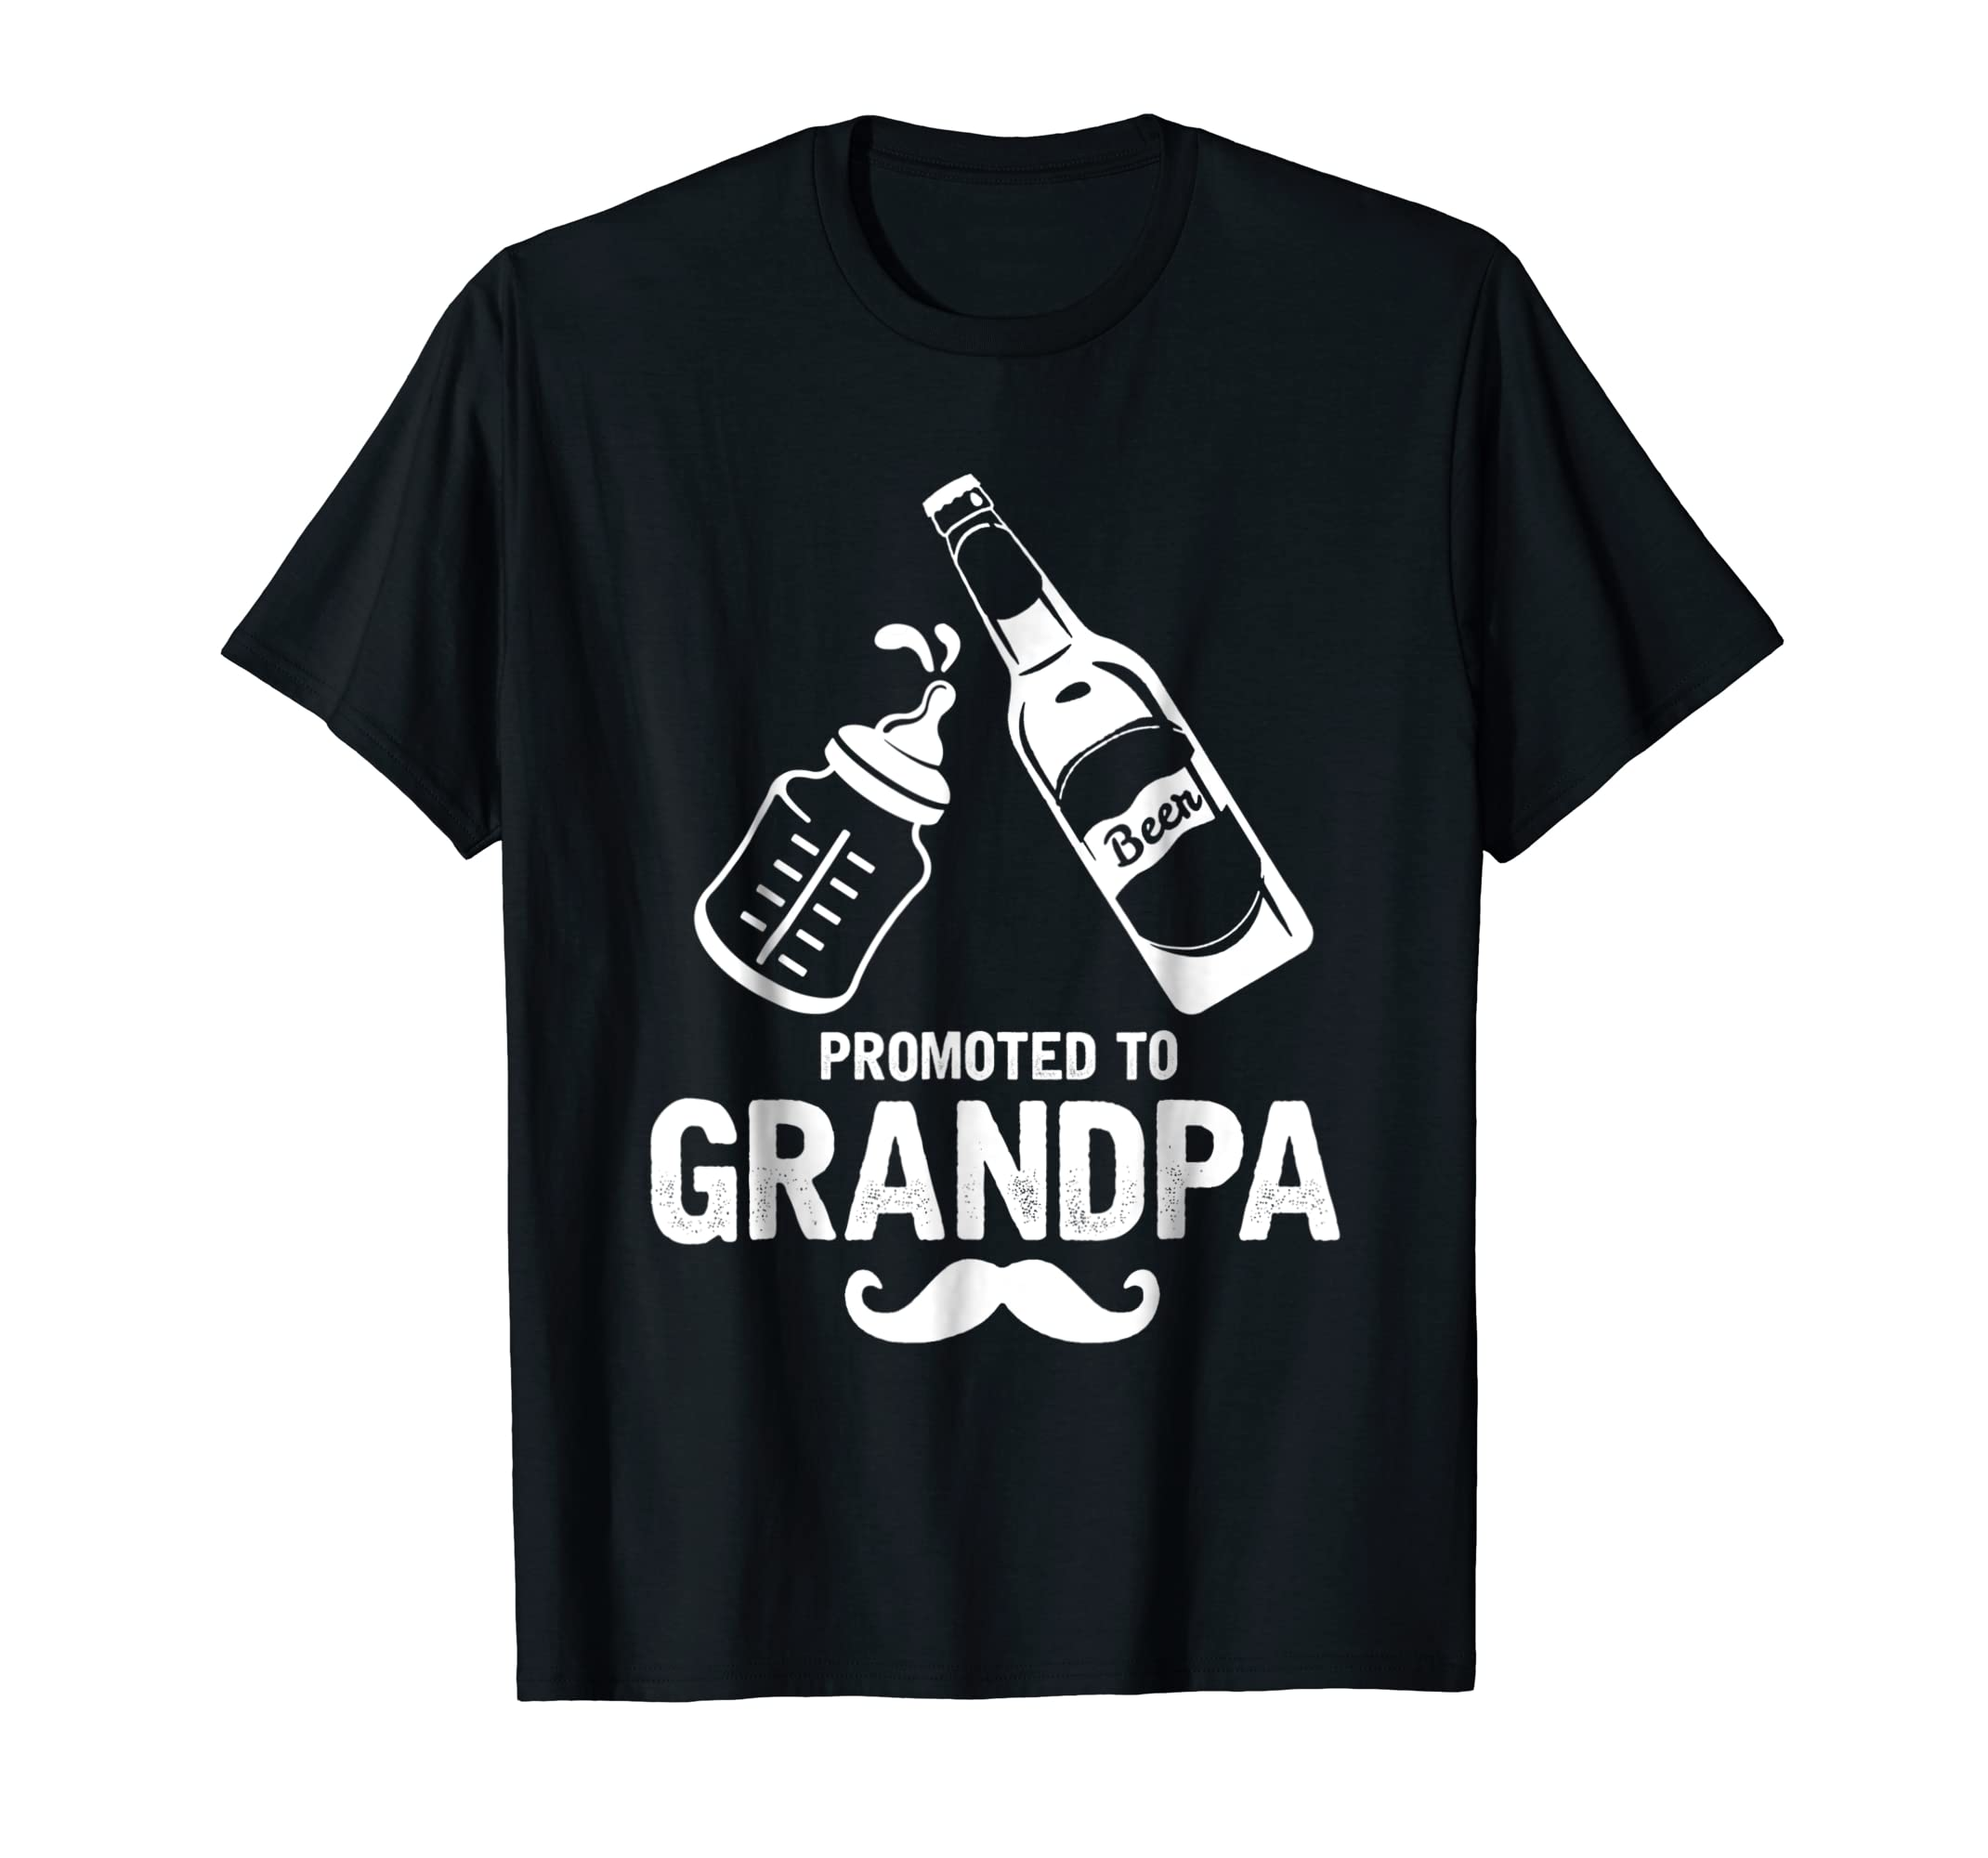 Grandpa Gifts First Time Dad Promoted to Grandpa T-Shirt-Men's T-Shirt-Black